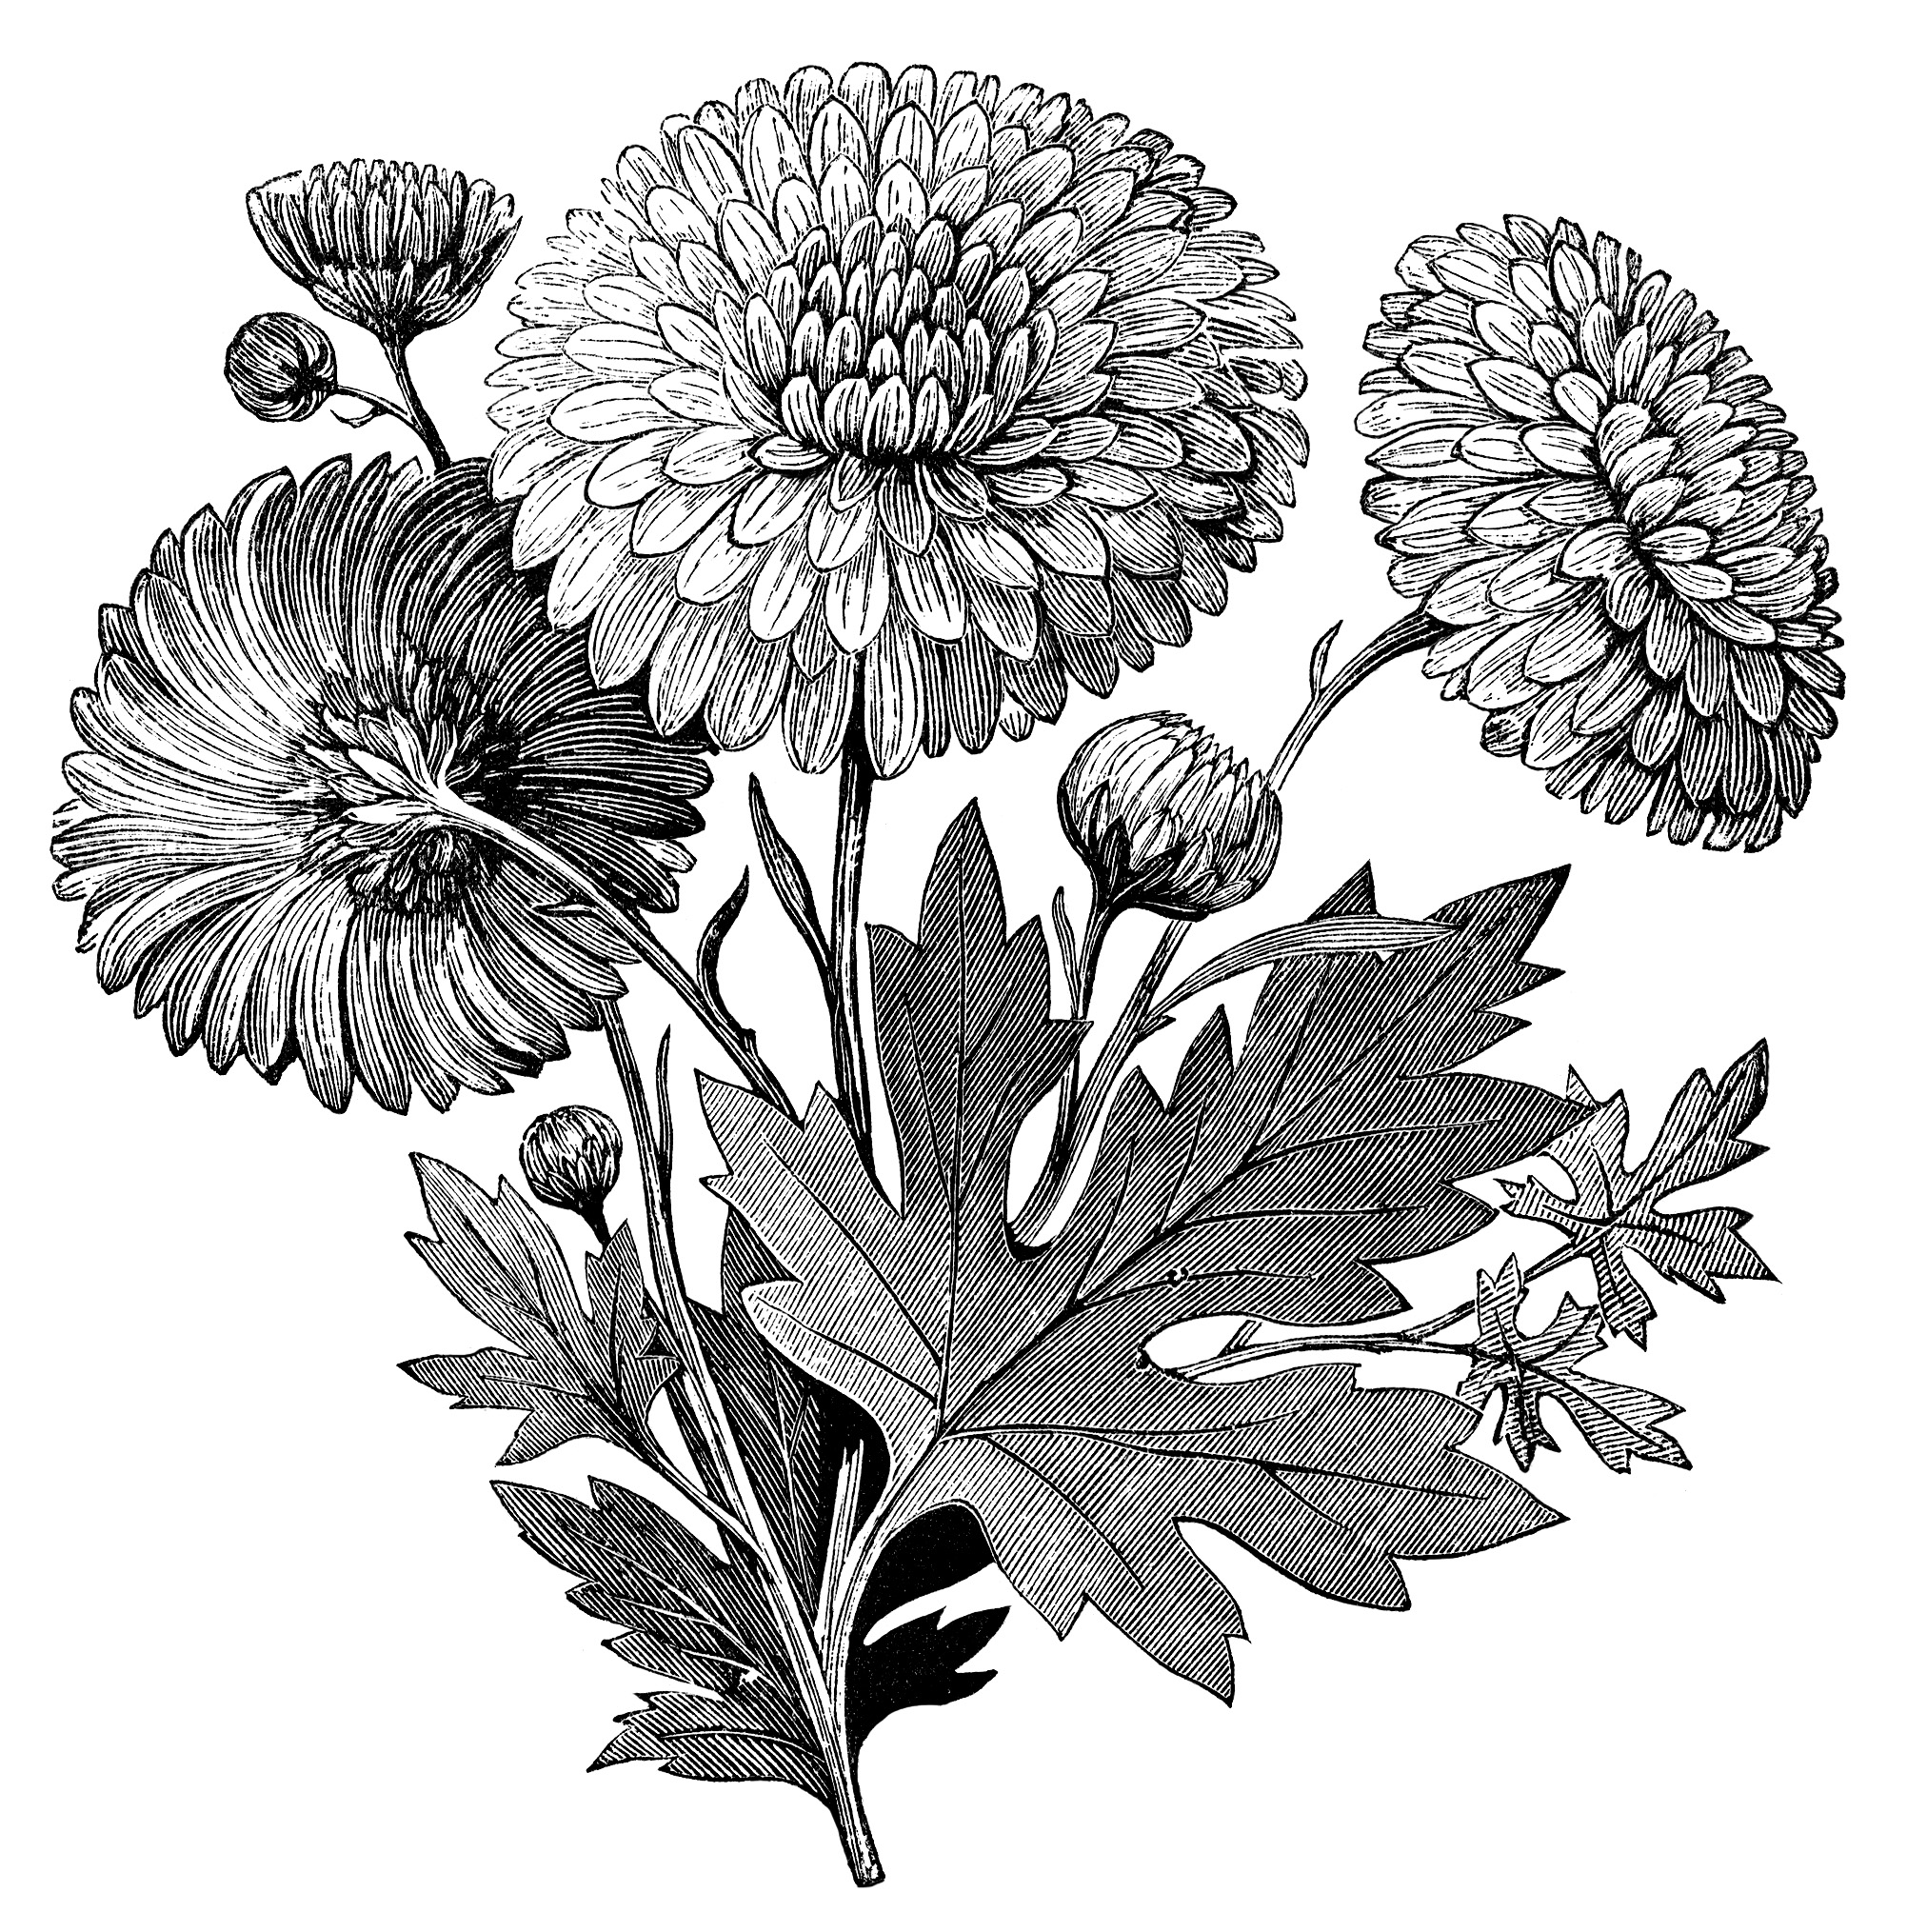 picture of flowers to print flower coloring printables for kids to flowers picture print of